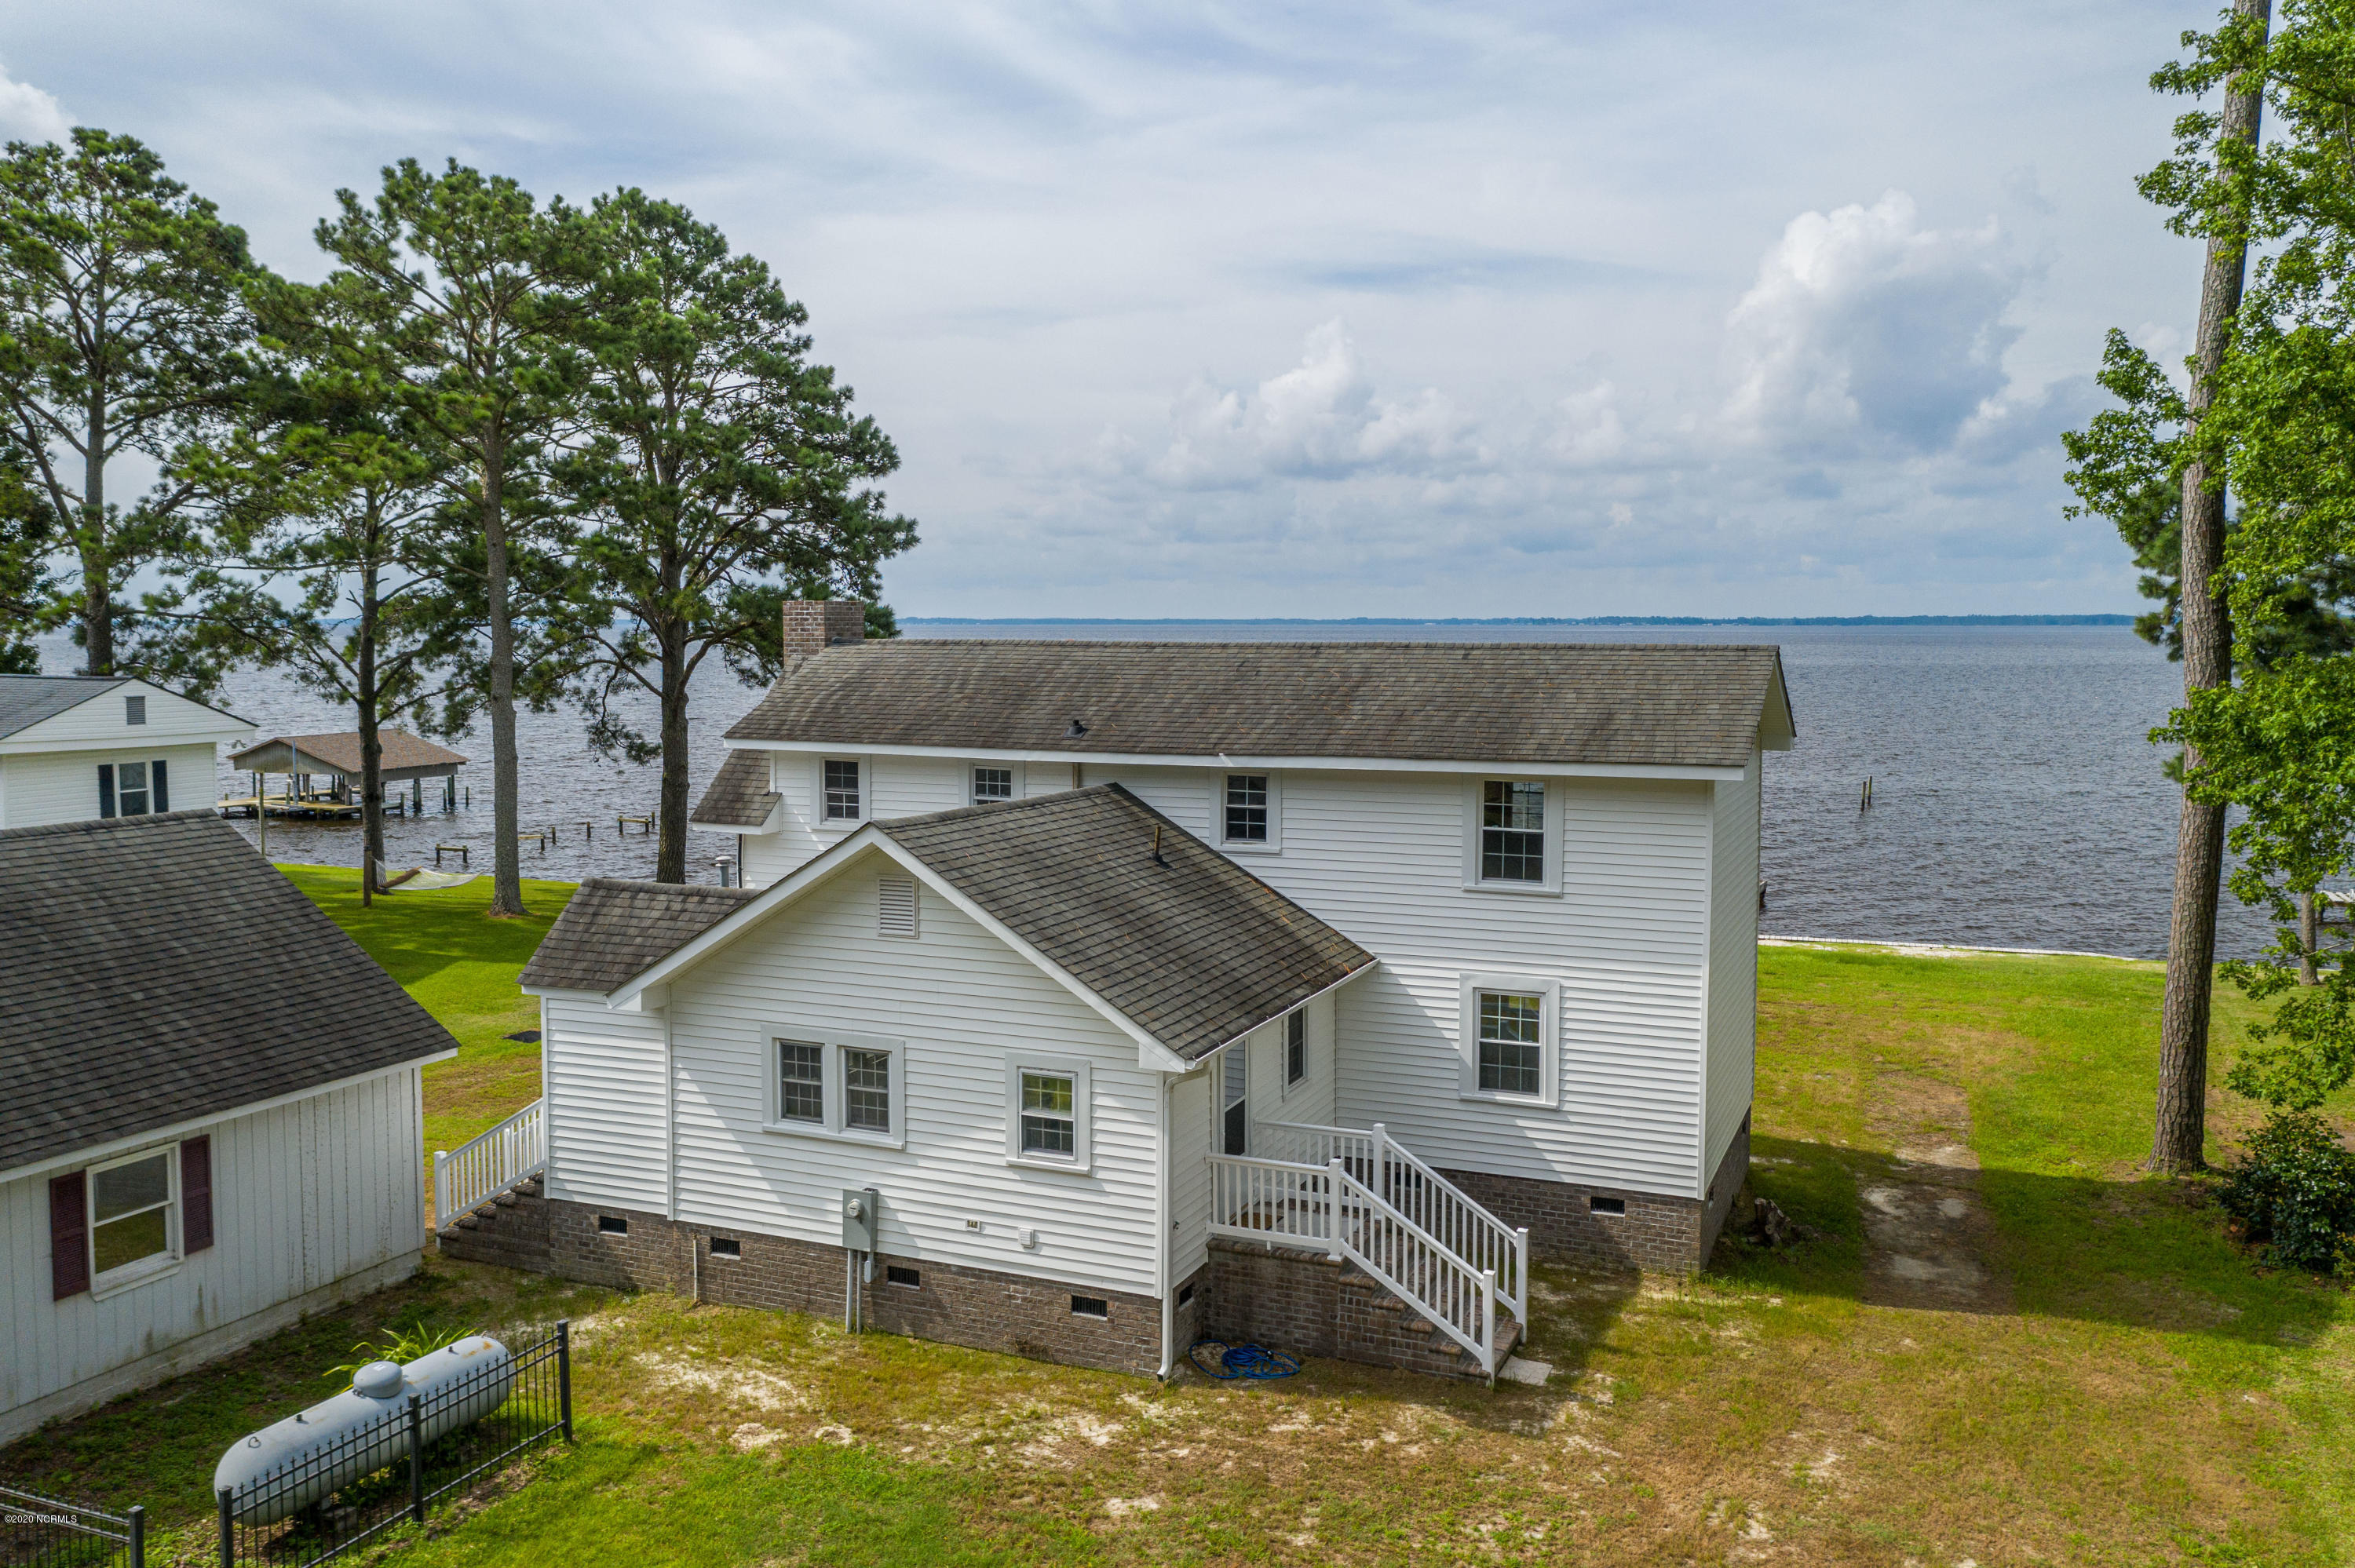 561 Island View Road, Bath, North Carolina 27808, 3 Bedrooms Bedrooms, 6 Rooms Rooms,2 BathroomsBathrooms,Single family residence,For sale,Island View,100227247